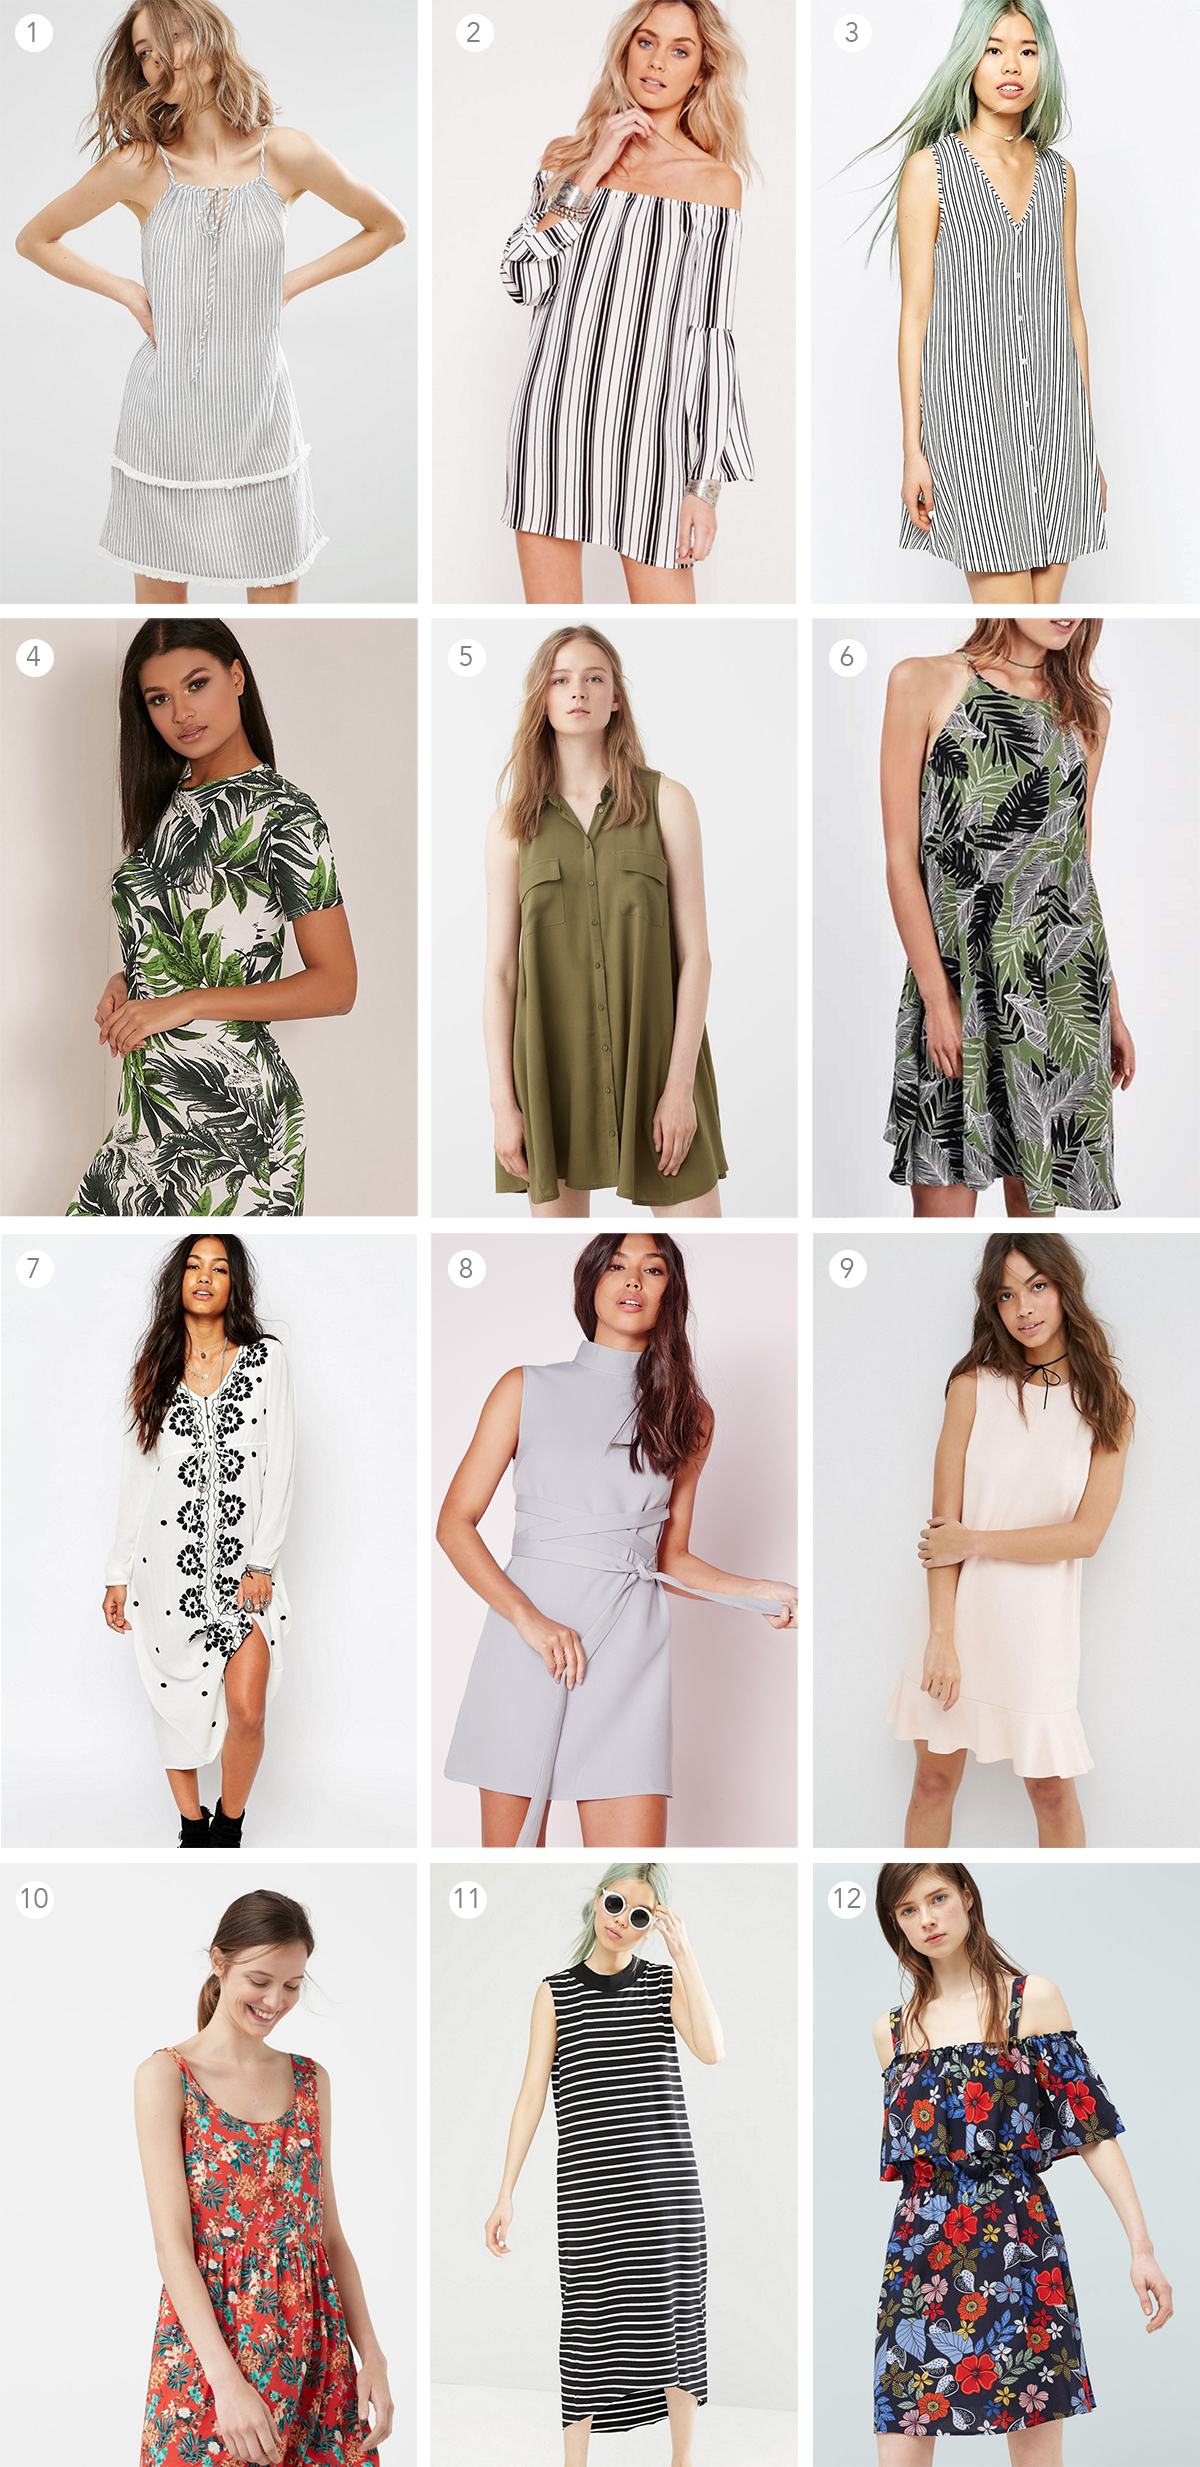 12-summer-dresses-under-25-pounds